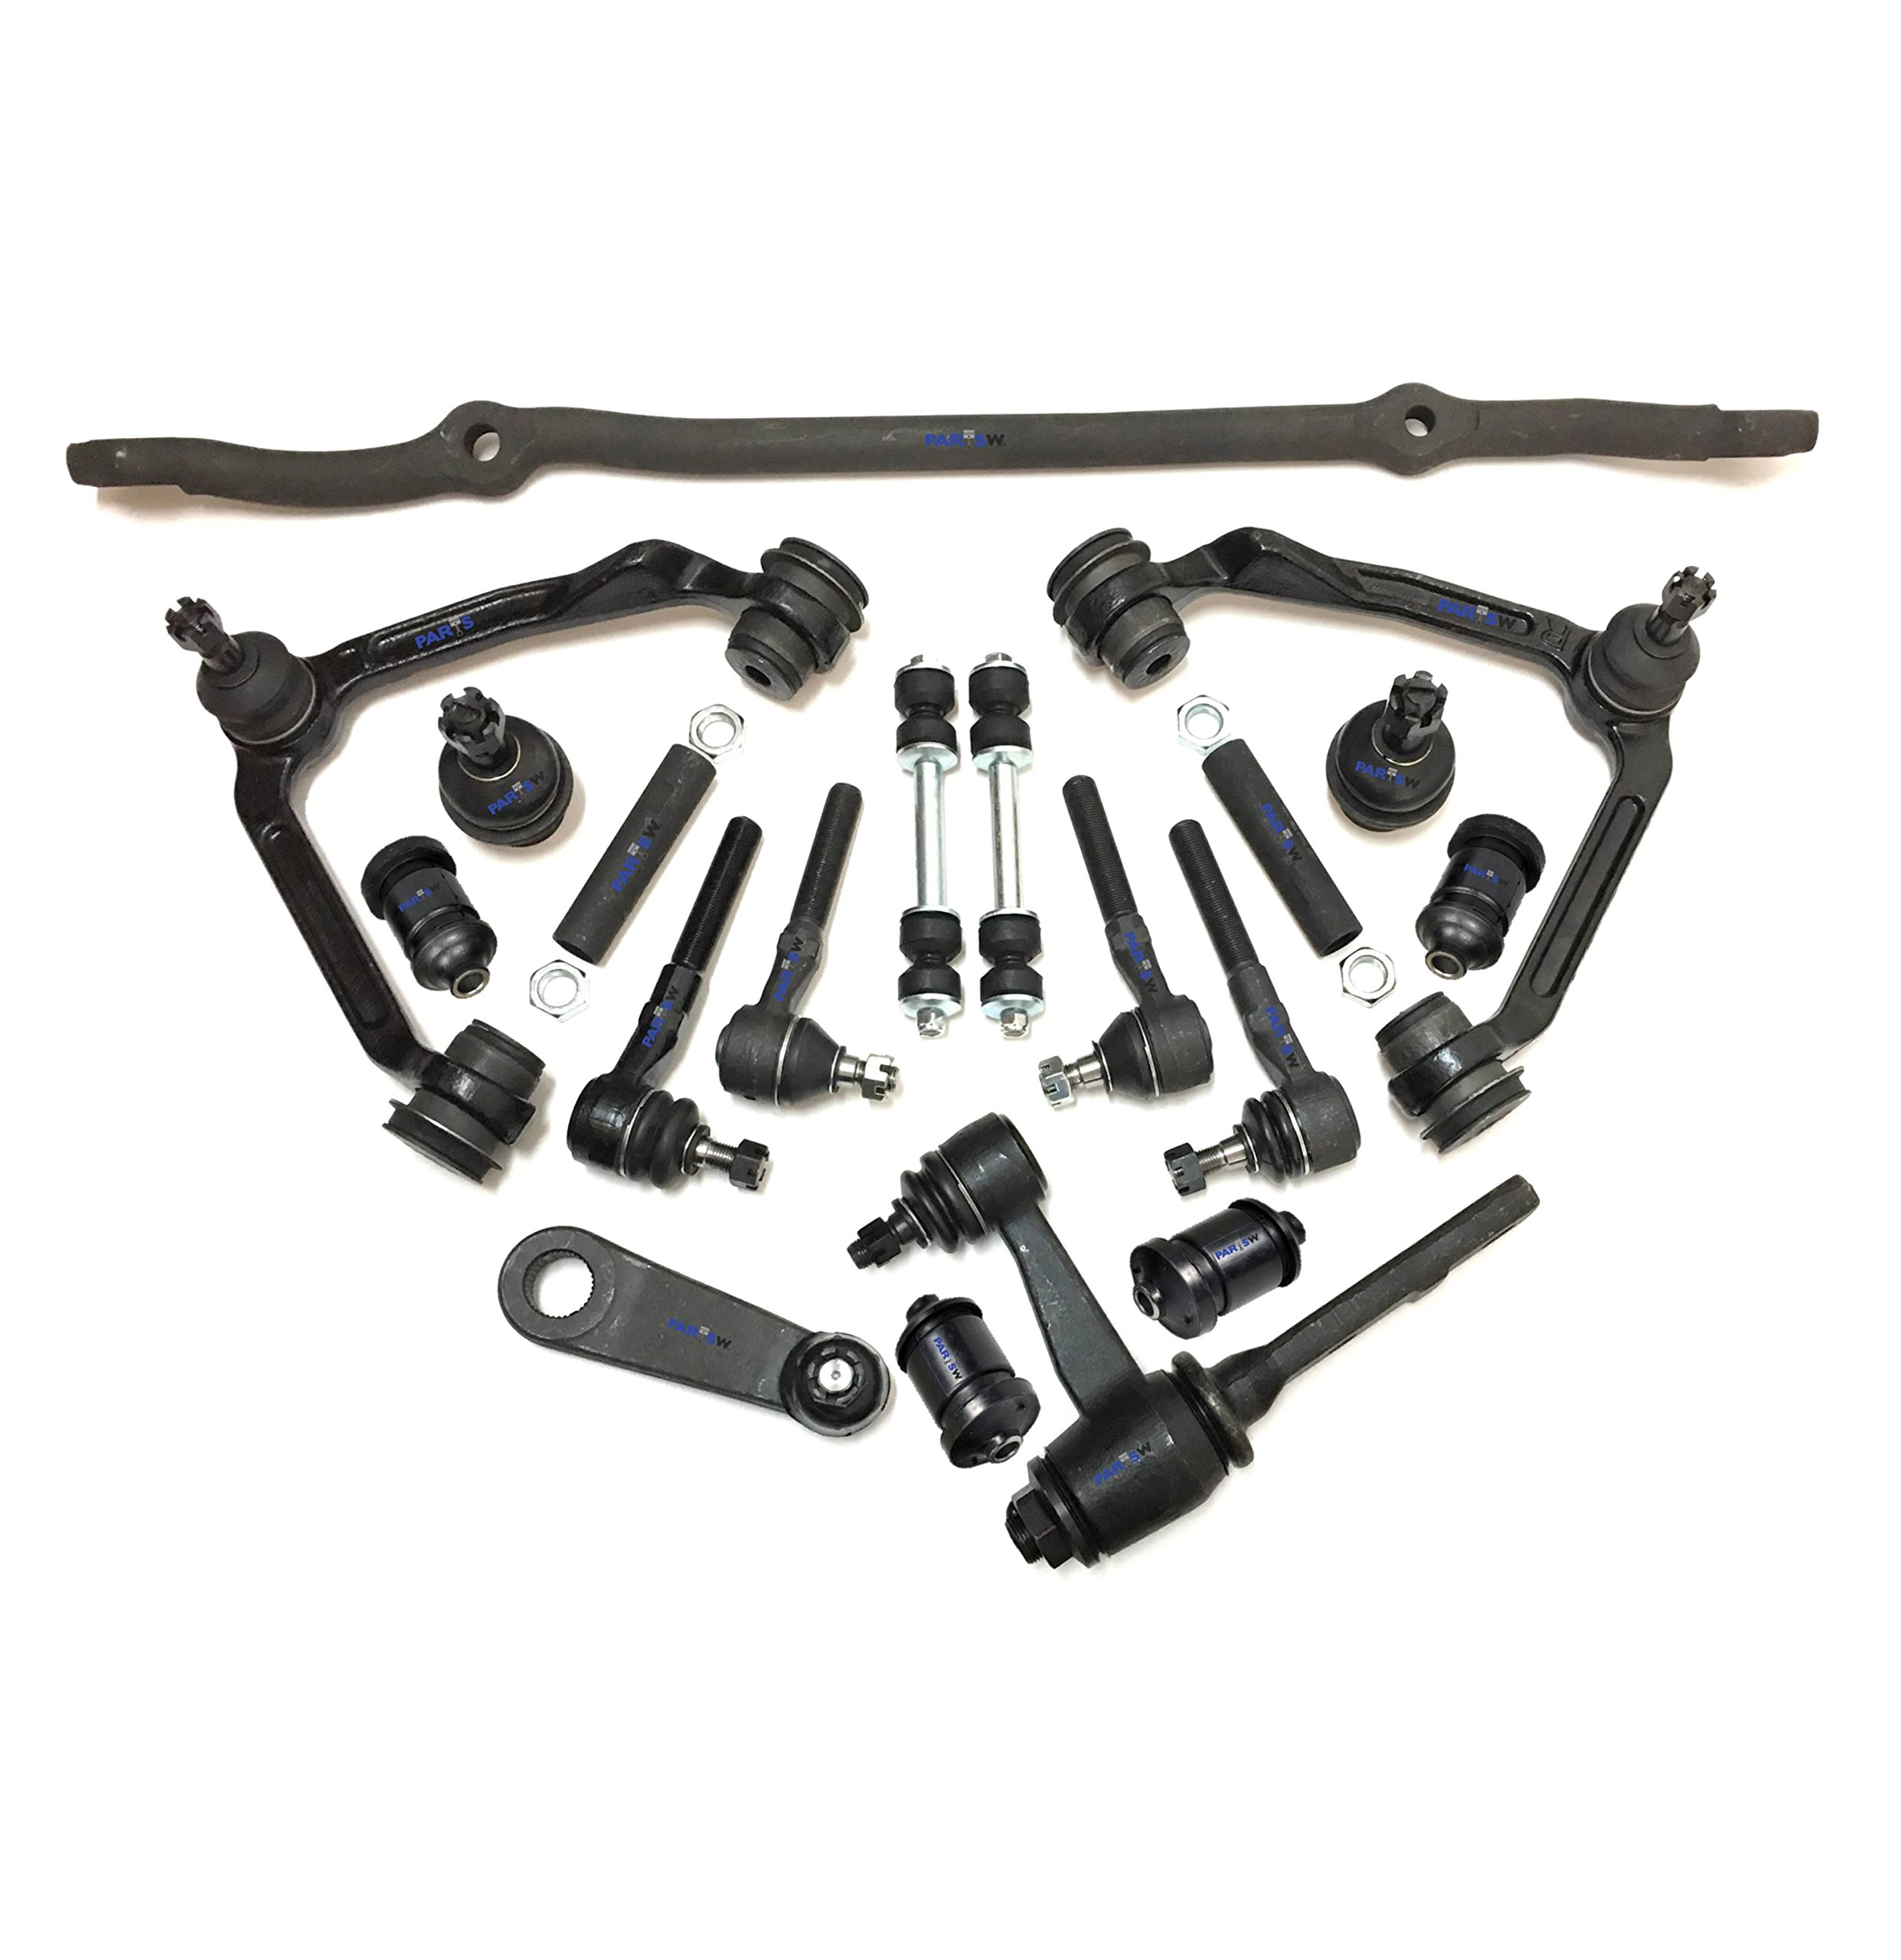 10 Pc Suspension Kit for Ford Expedition Control Arms Inner /& Outer Tie Rod End